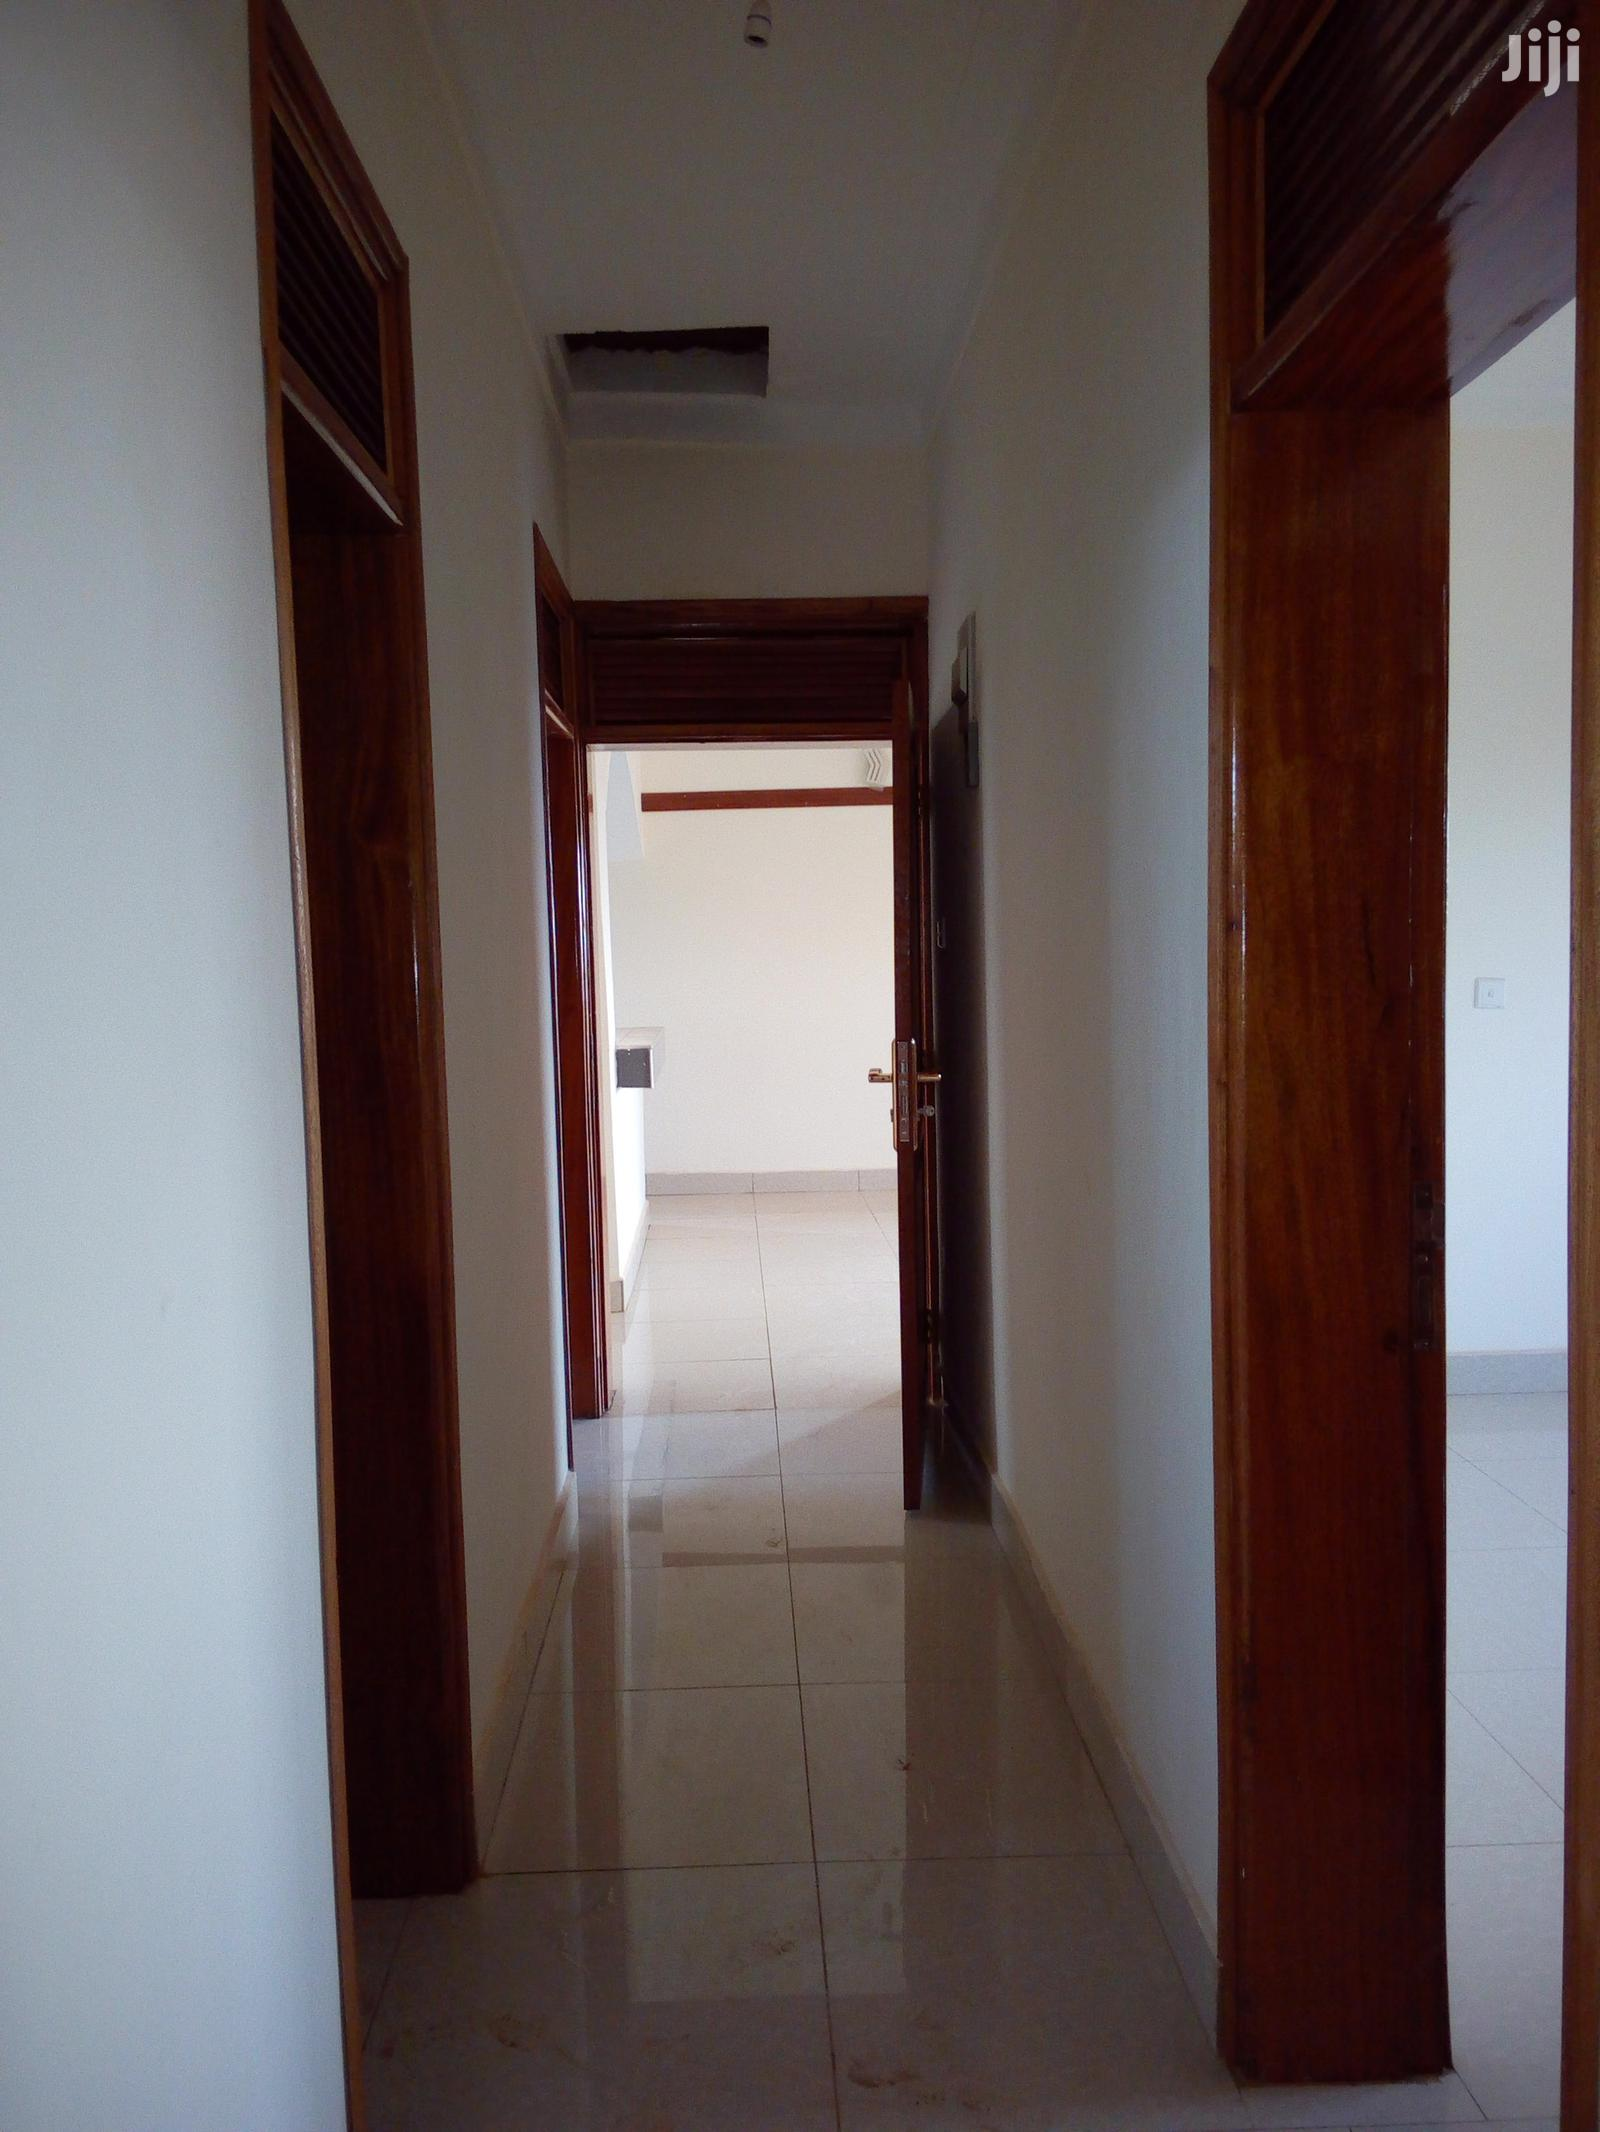 NAMUGONGO Three Bedroom New Apartment For Rent | Houses & Apartments For Rent for sale in Kampala, Central Region, Uganda